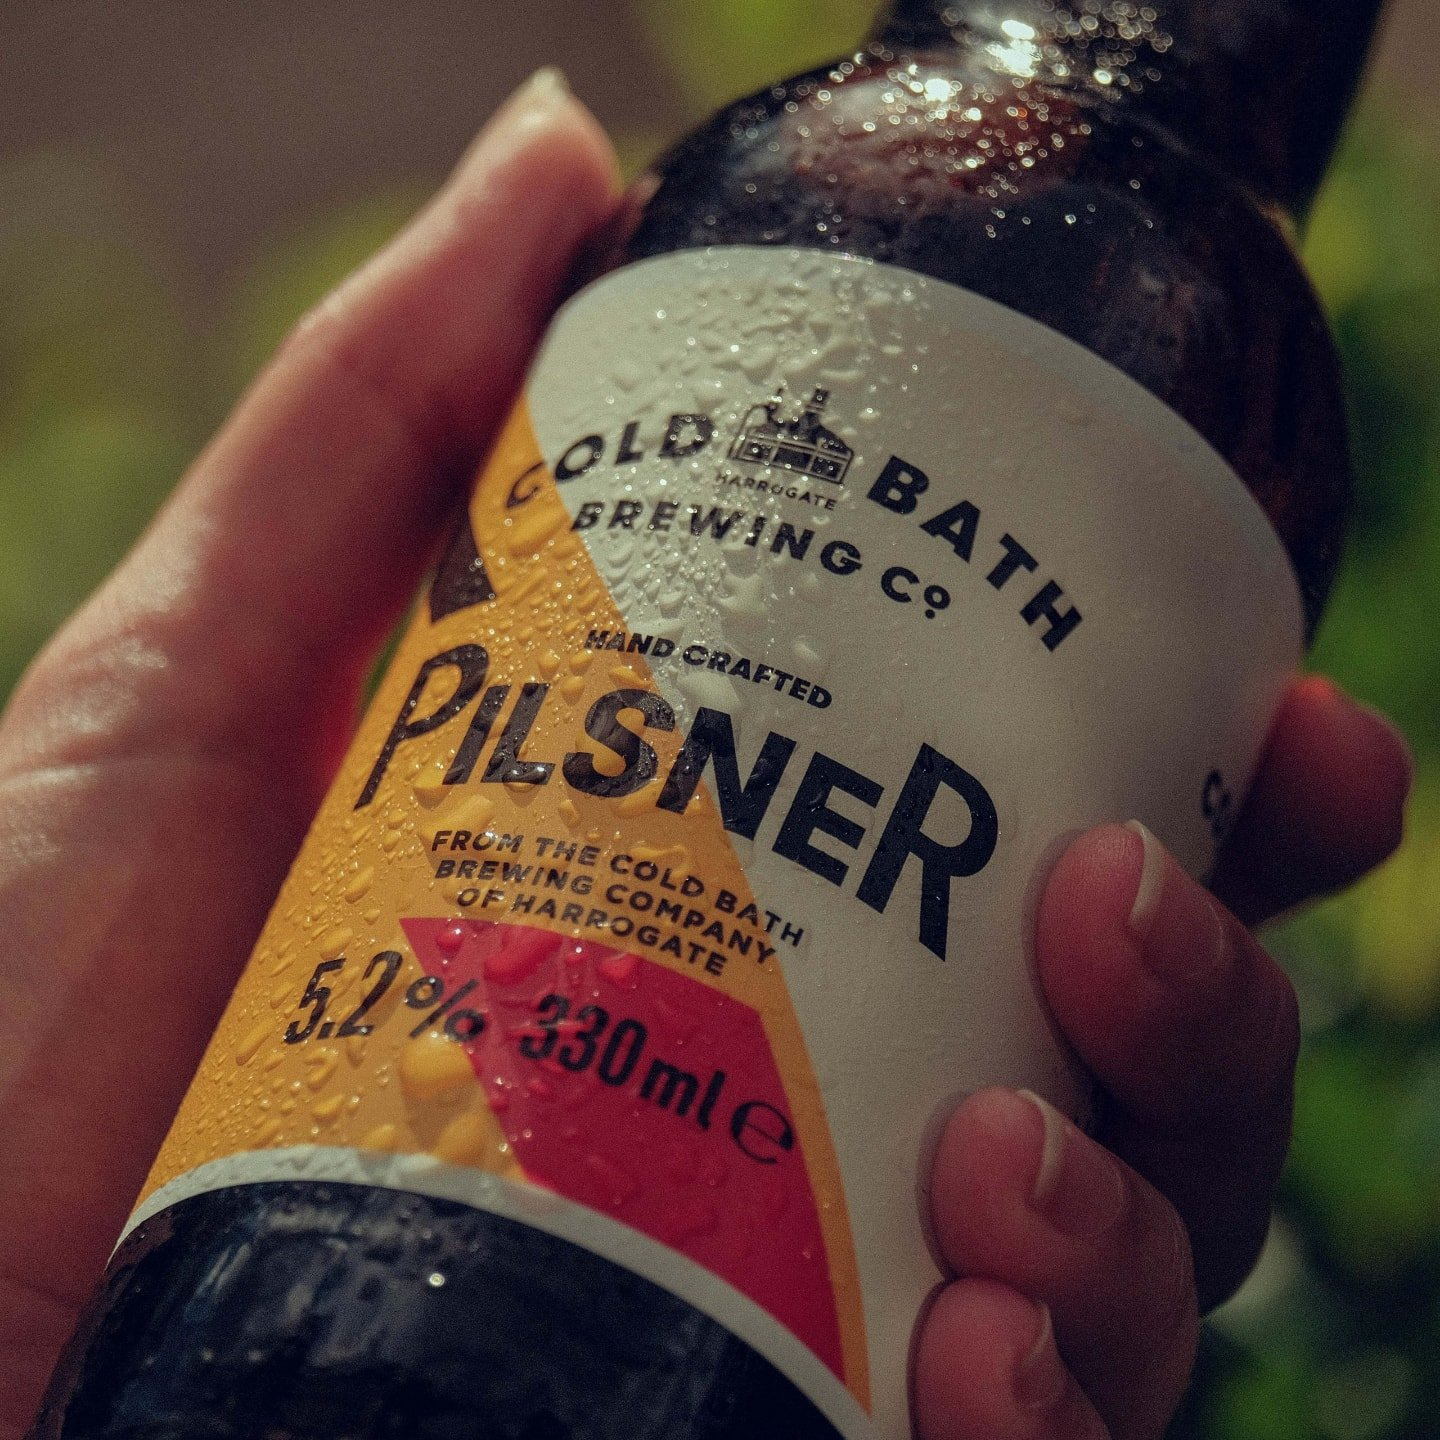 Cold Bath Brewing Co Hand Crafted Pilsner